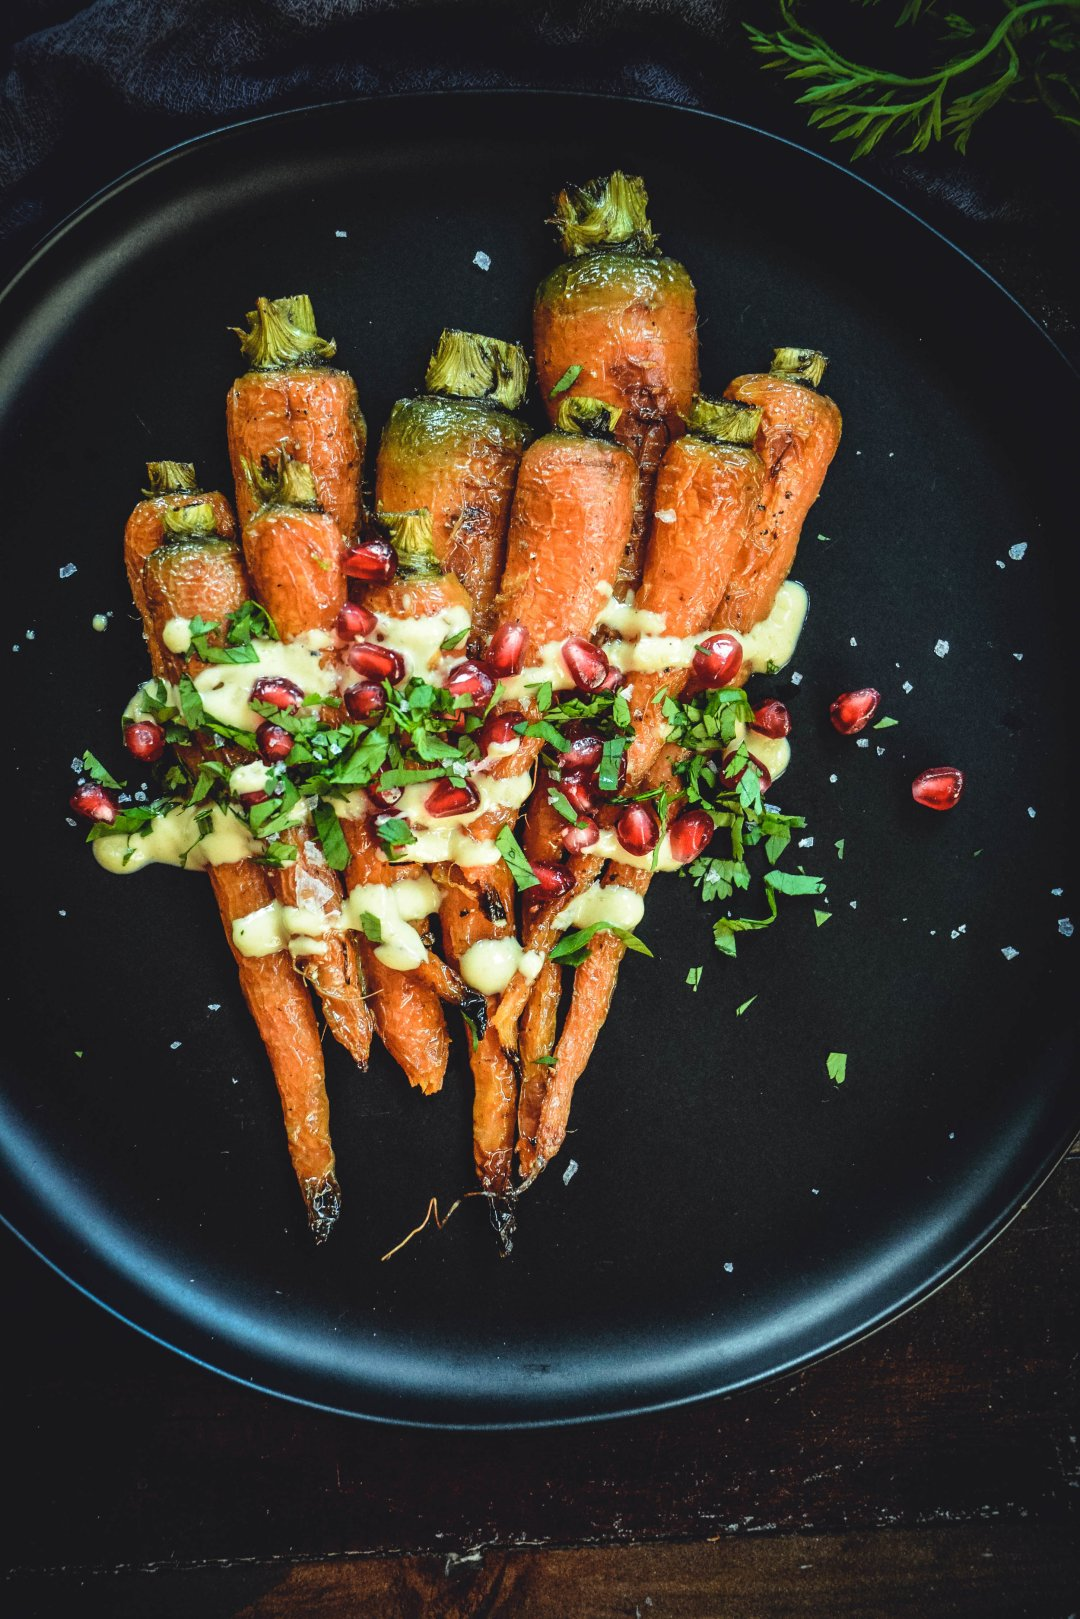 Roasted Carrots With A Simple Orange Tahini Sauce And Pomegranate on black plate